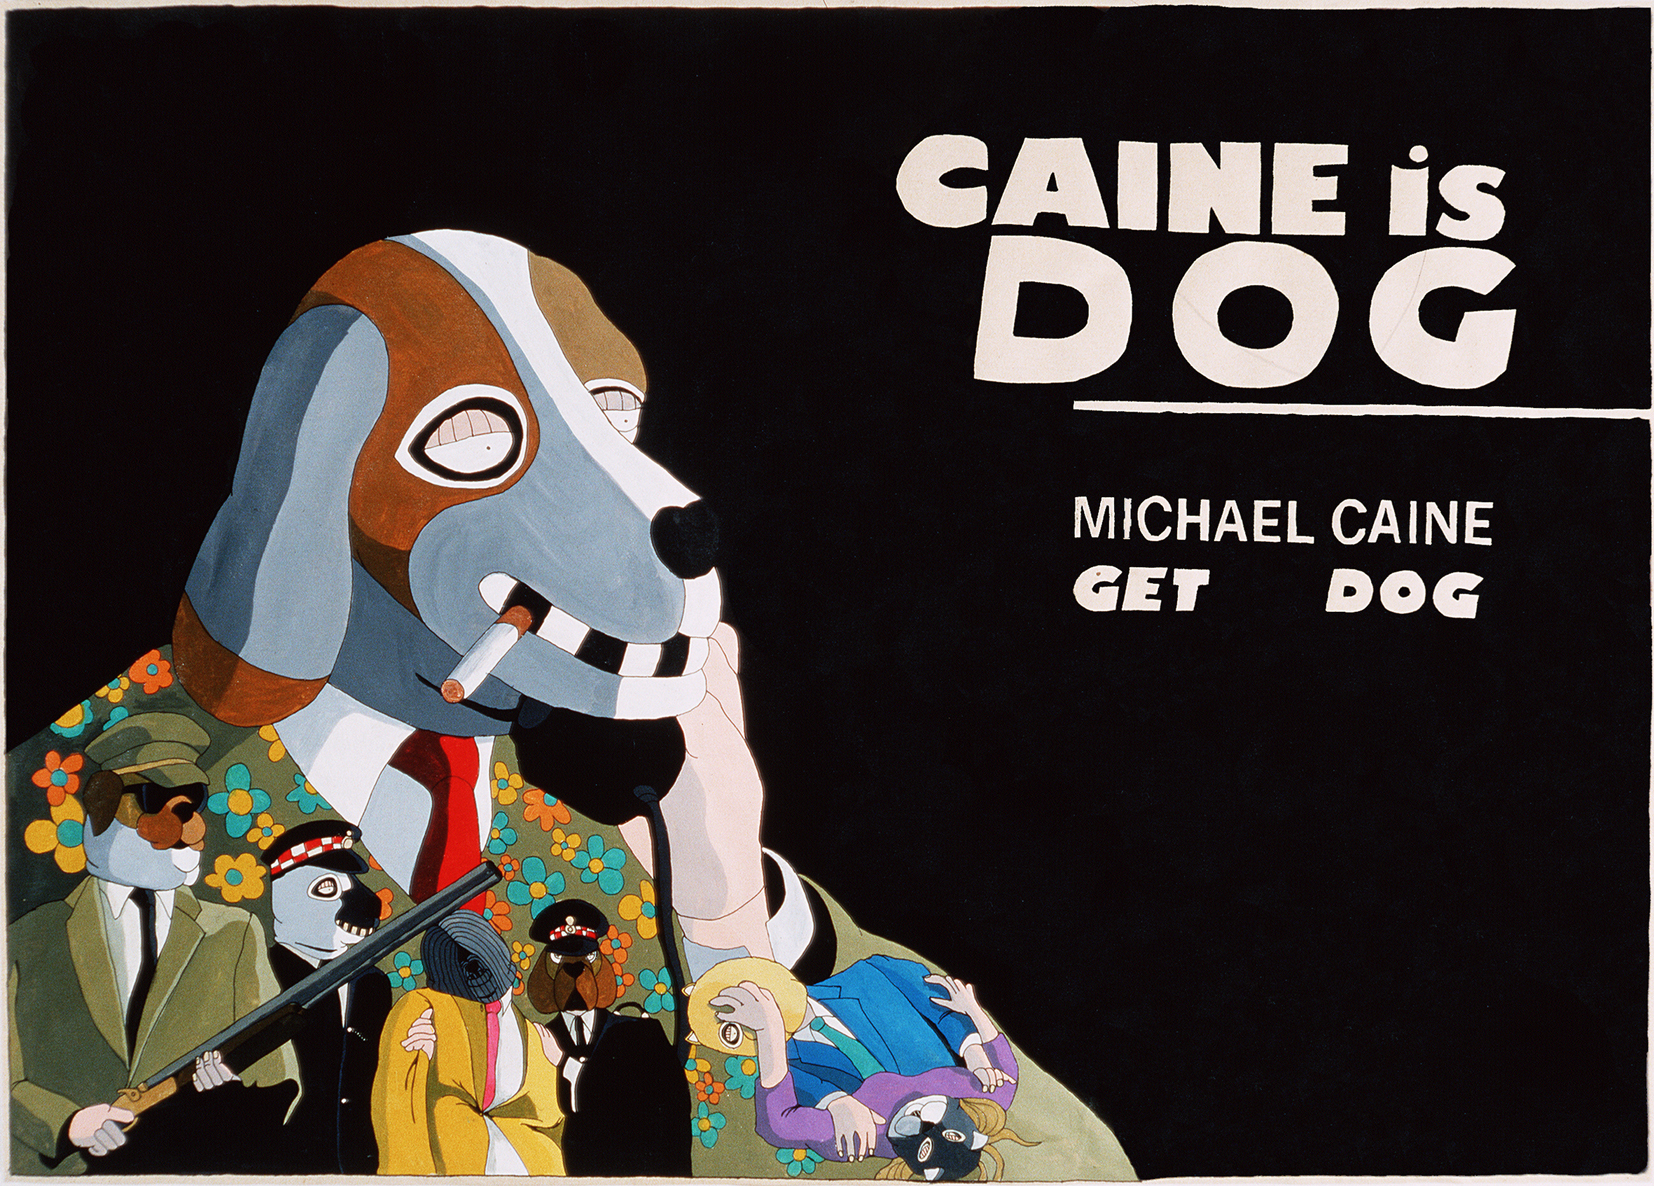 Caine Is Dog